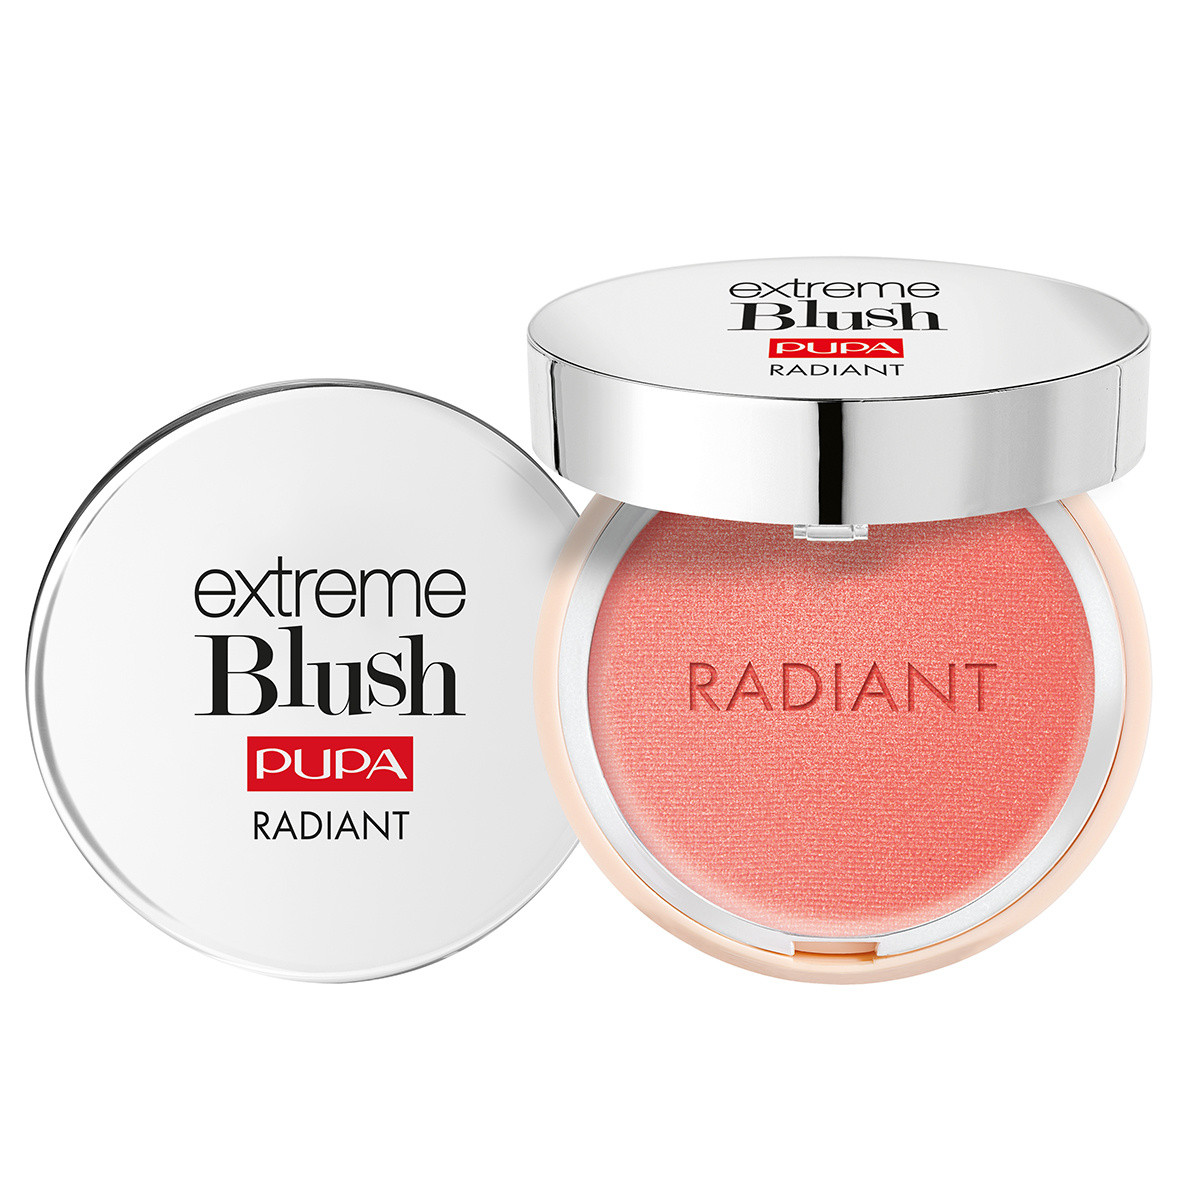 Pupa extreme blush radiant - 30, 030CORAL PASSION, large image number 0